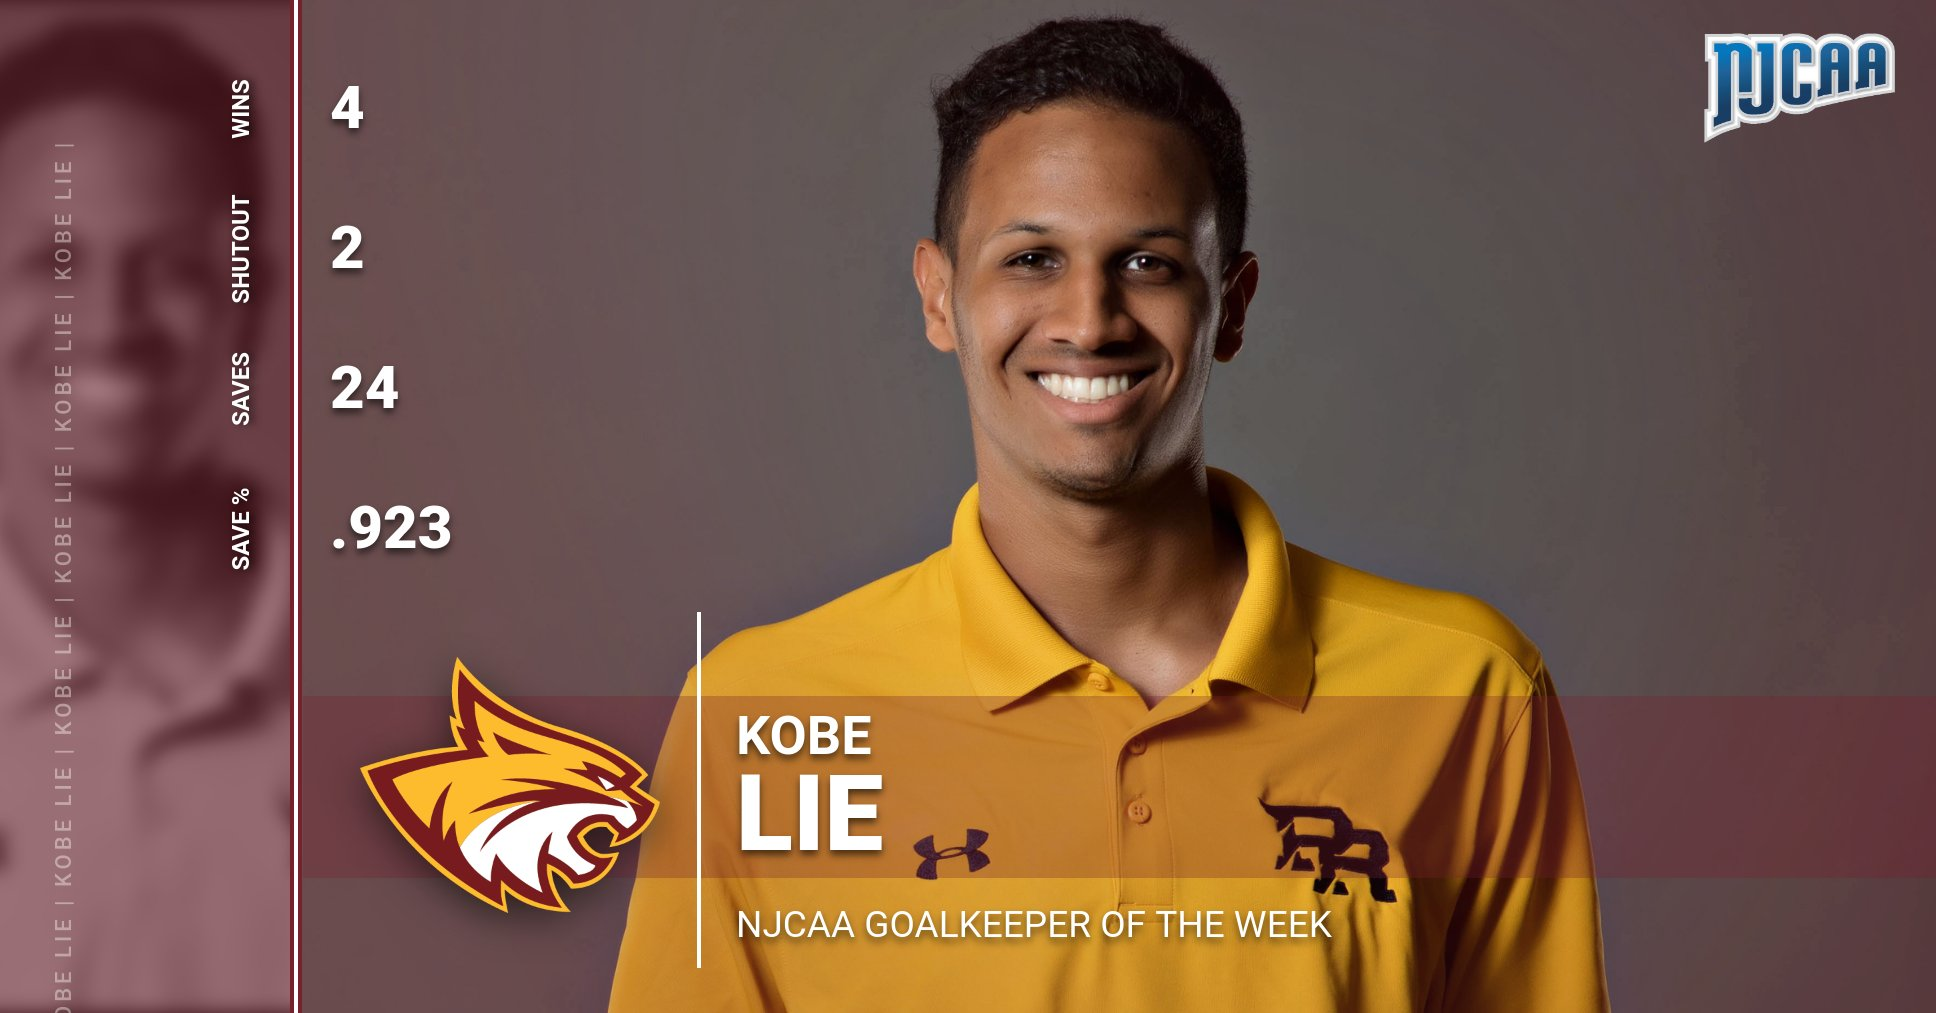 PRCC's Kobe Lie named nation's top keeper for Week 1